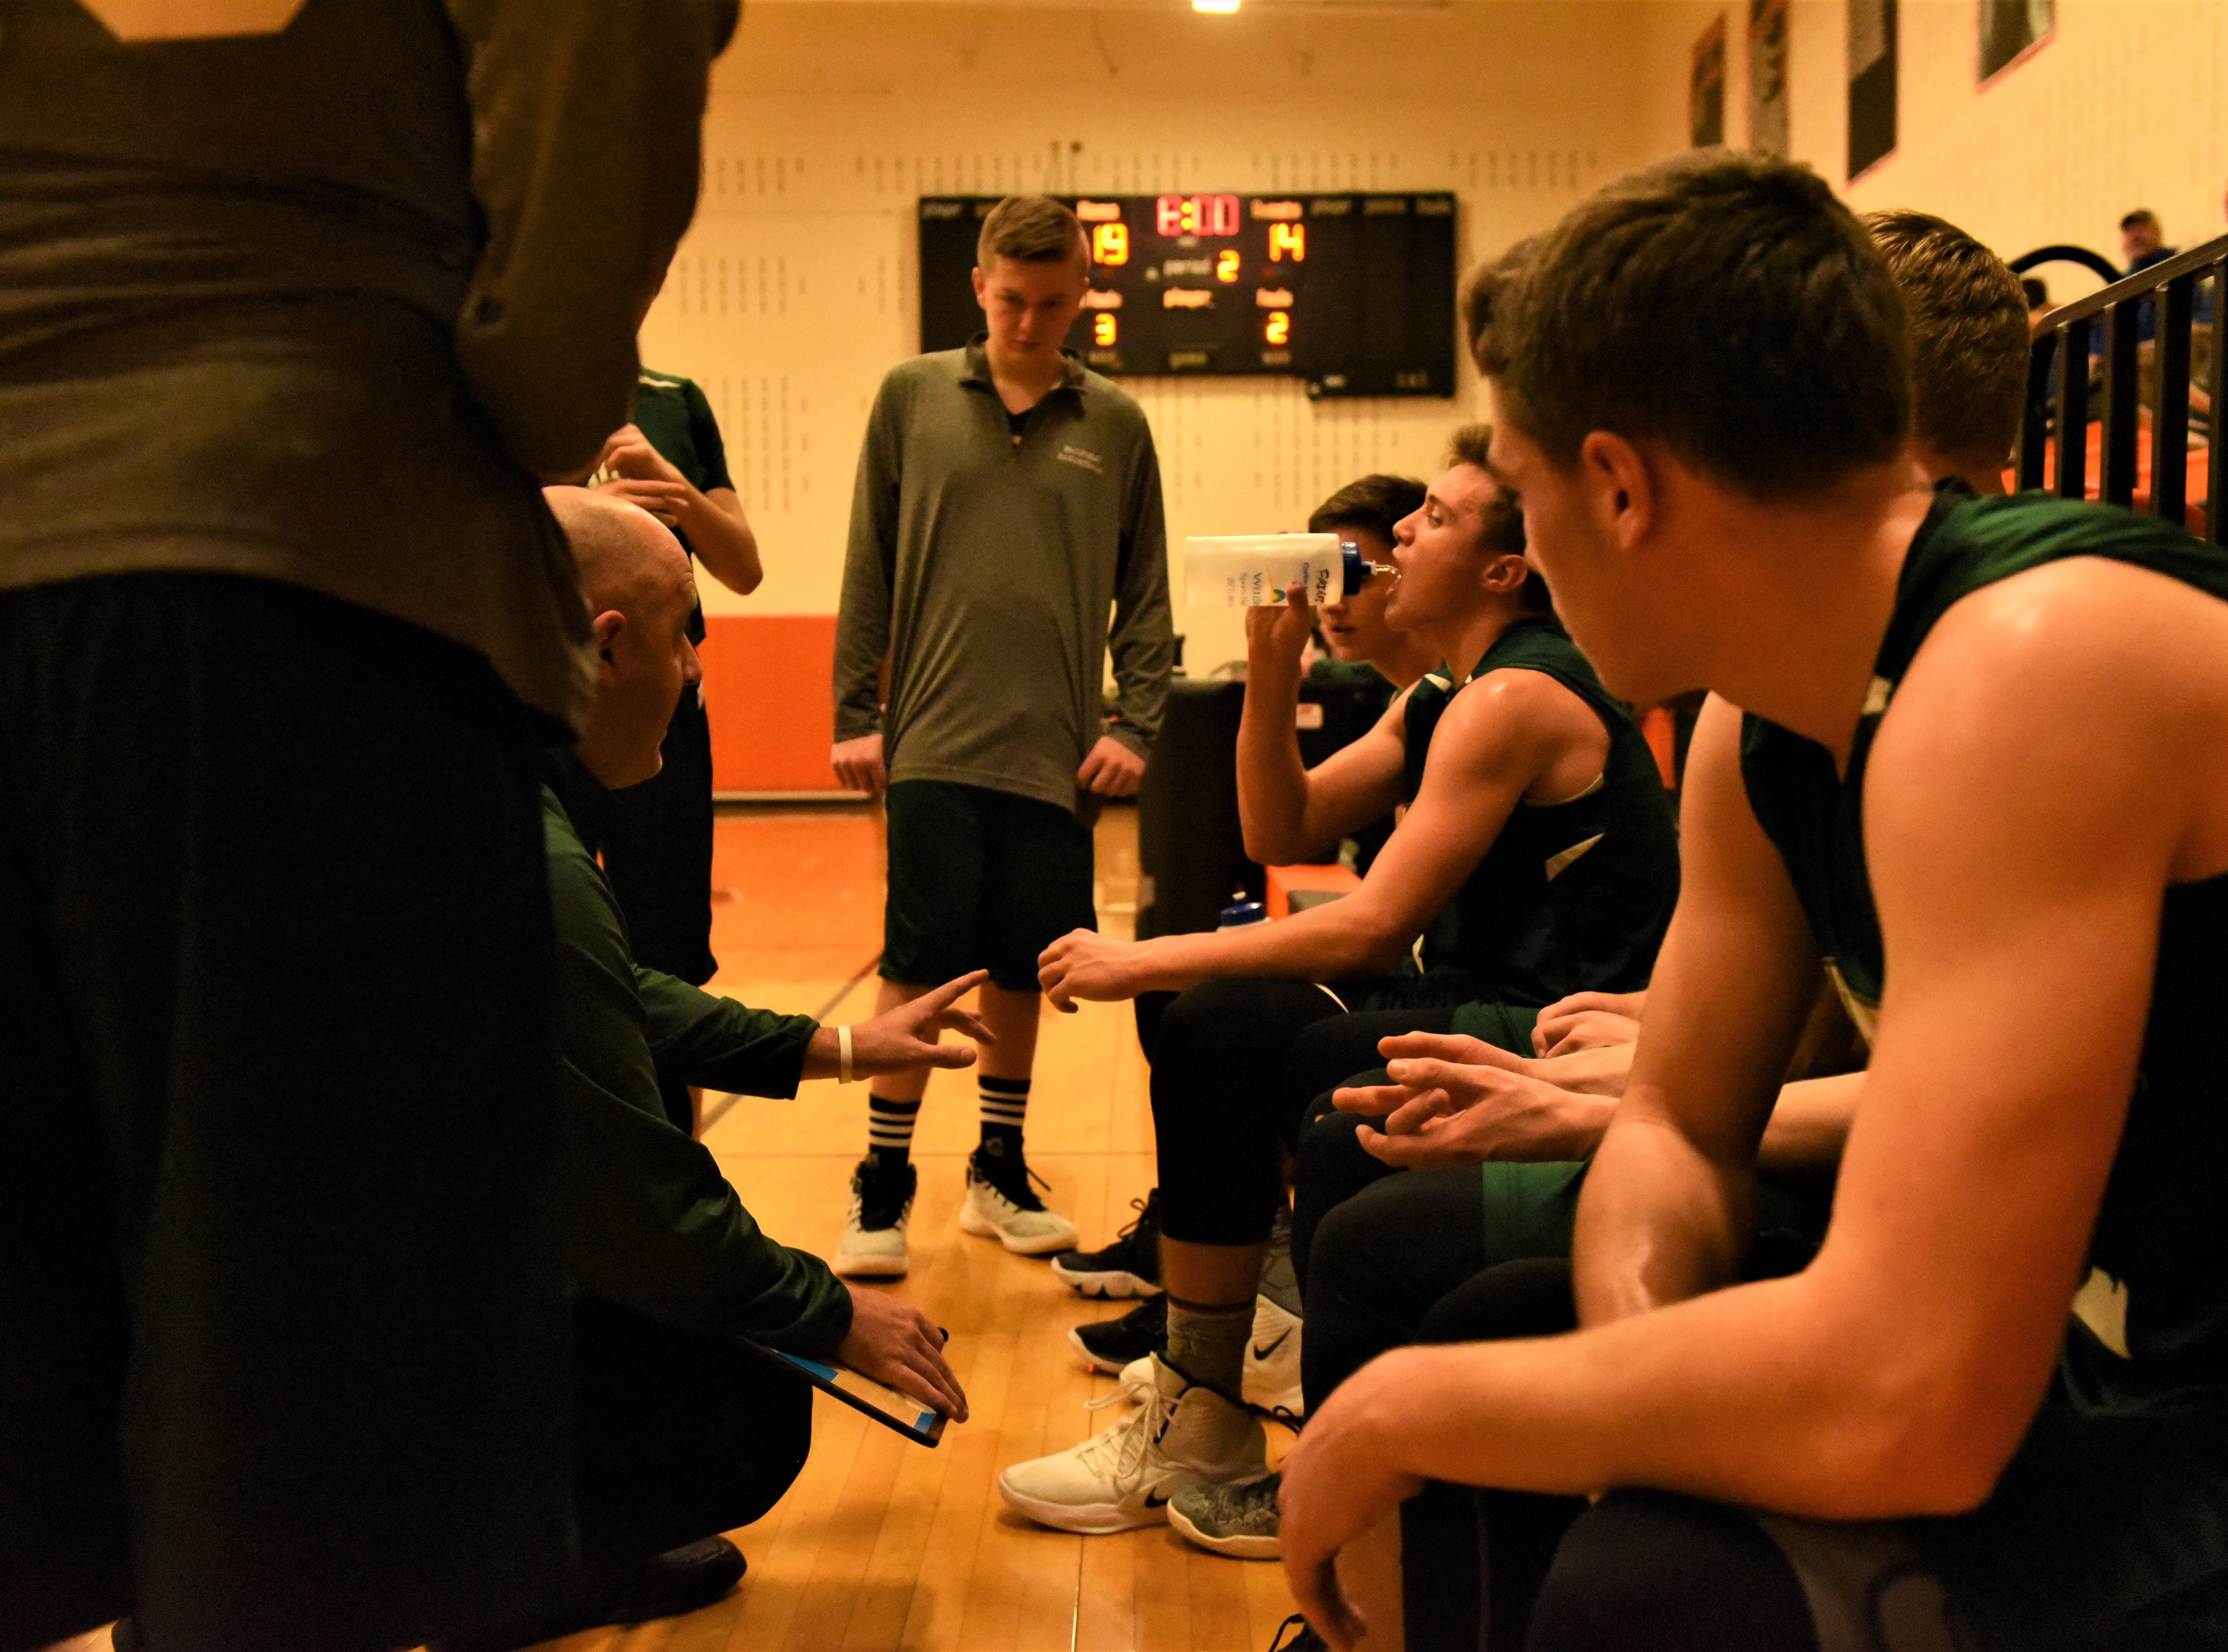 The Fairfield coach talks to the team at the end of the first half. Fairfield High School lost at Hanover High School on Dec. 21, 57 to 43.